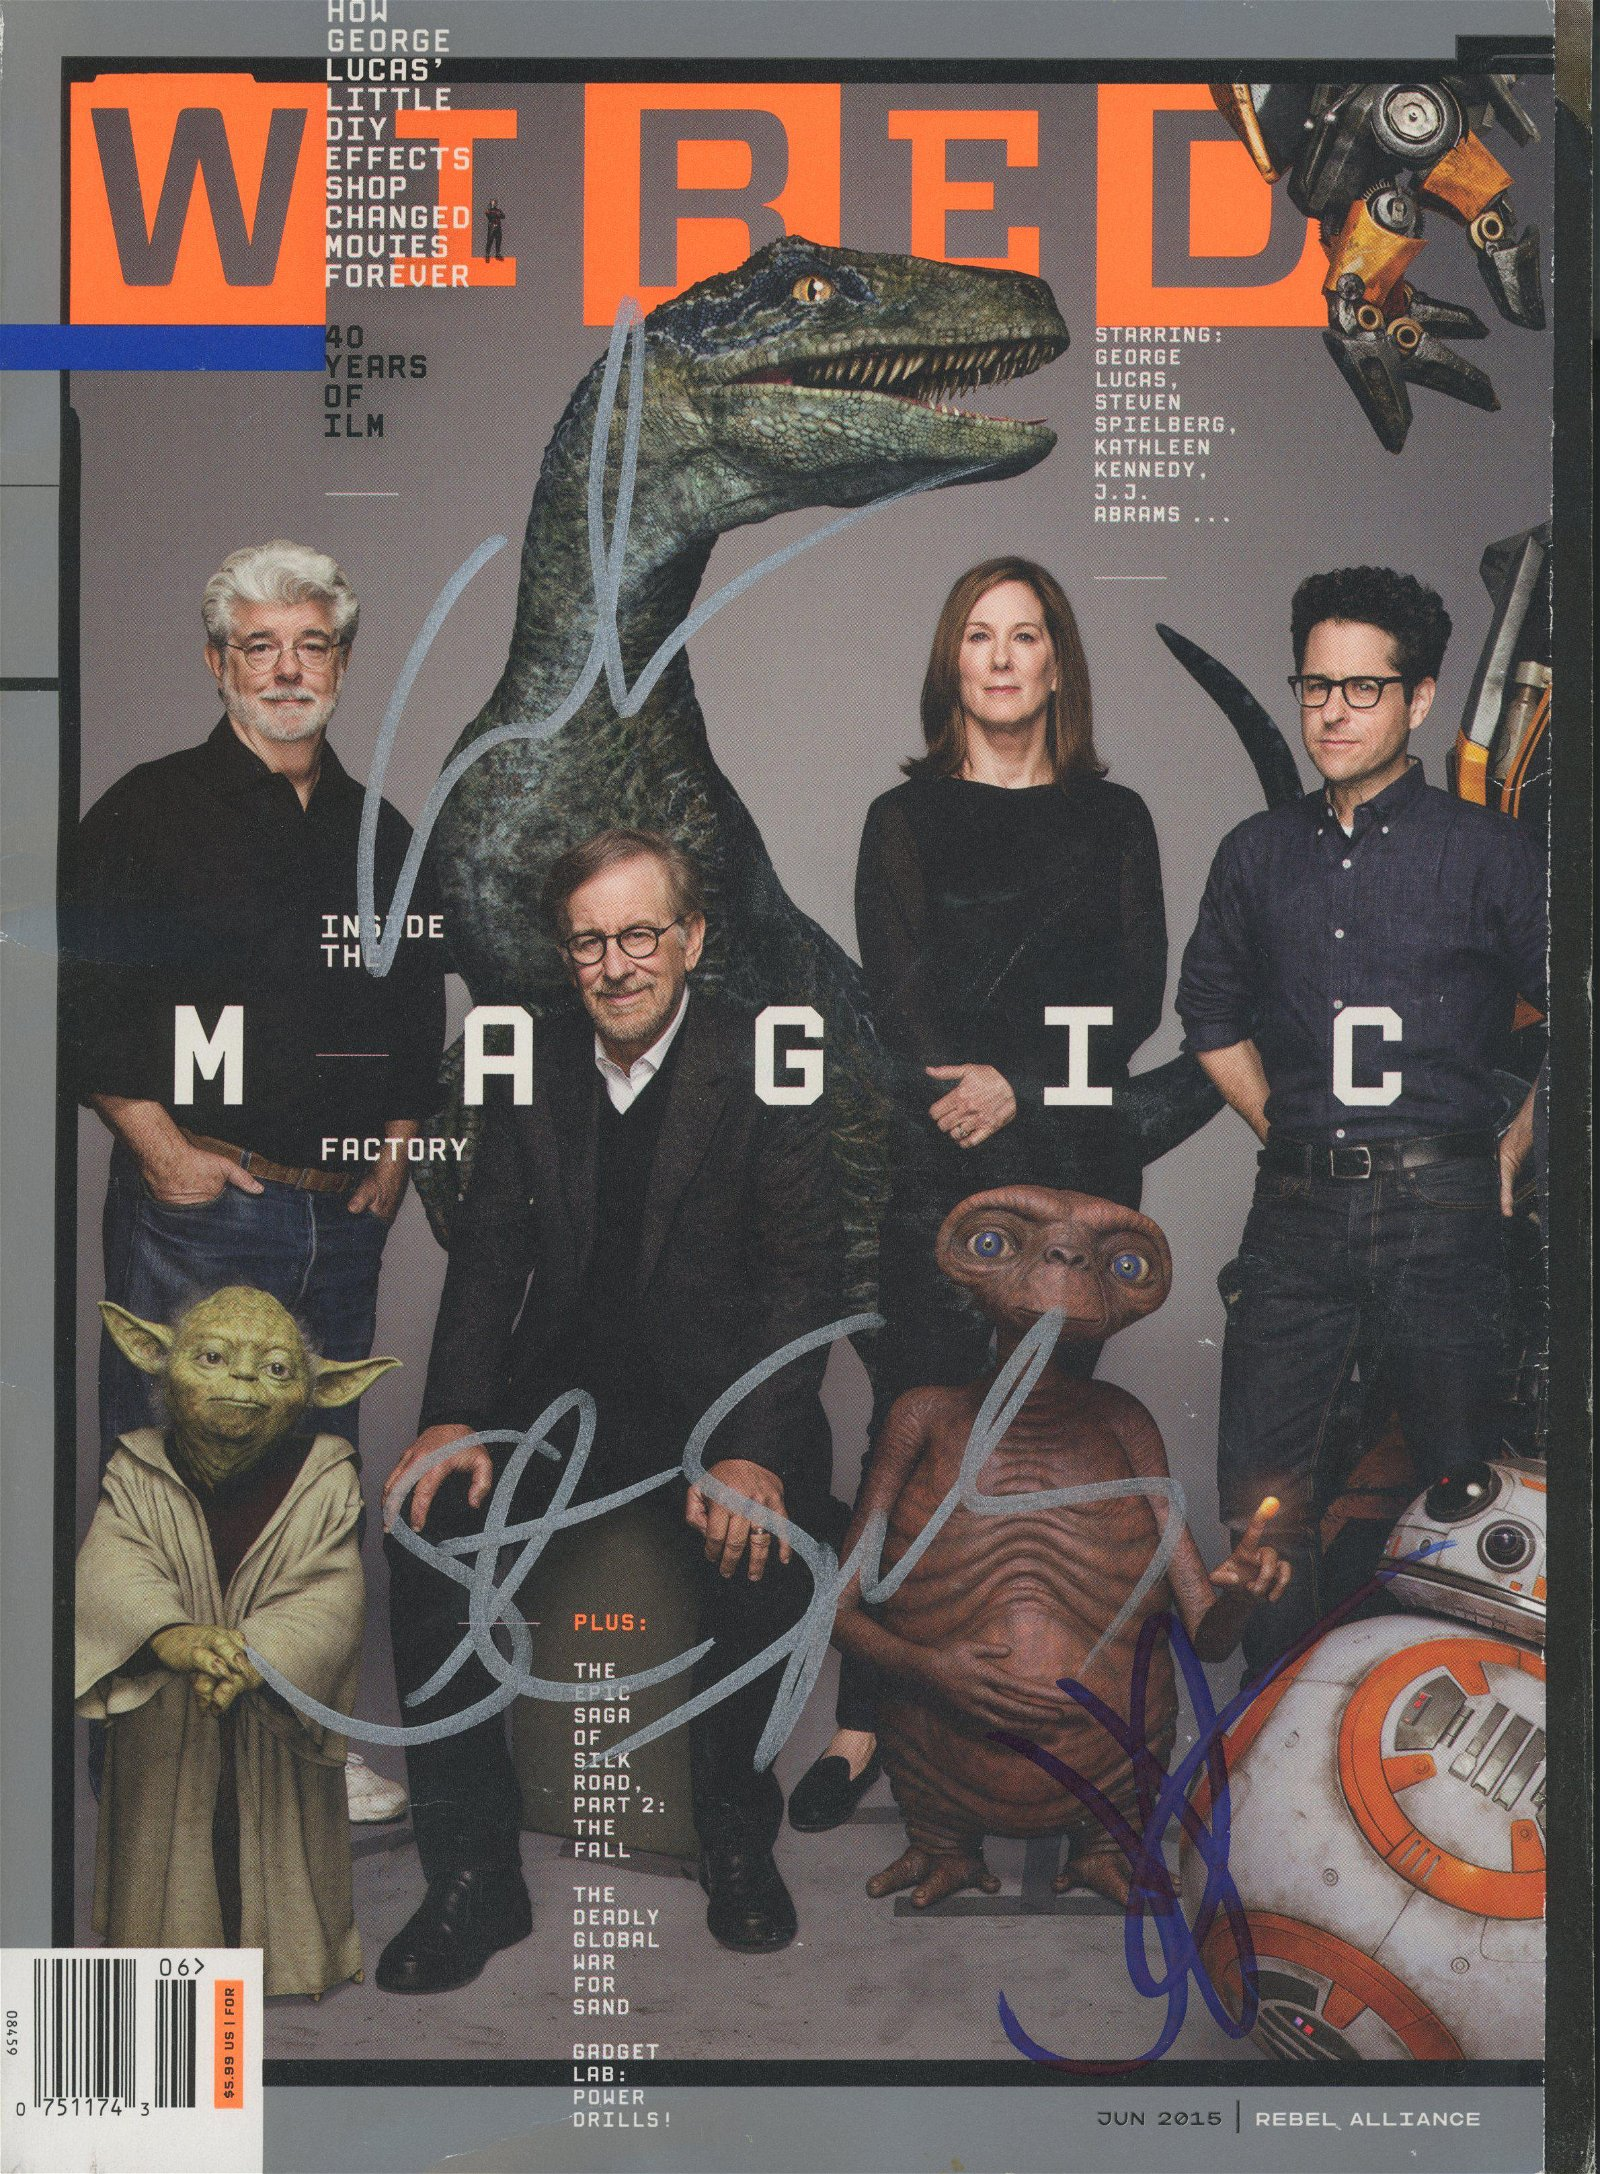 George Lucas, Steven Spielberg and JJ Abrams signed